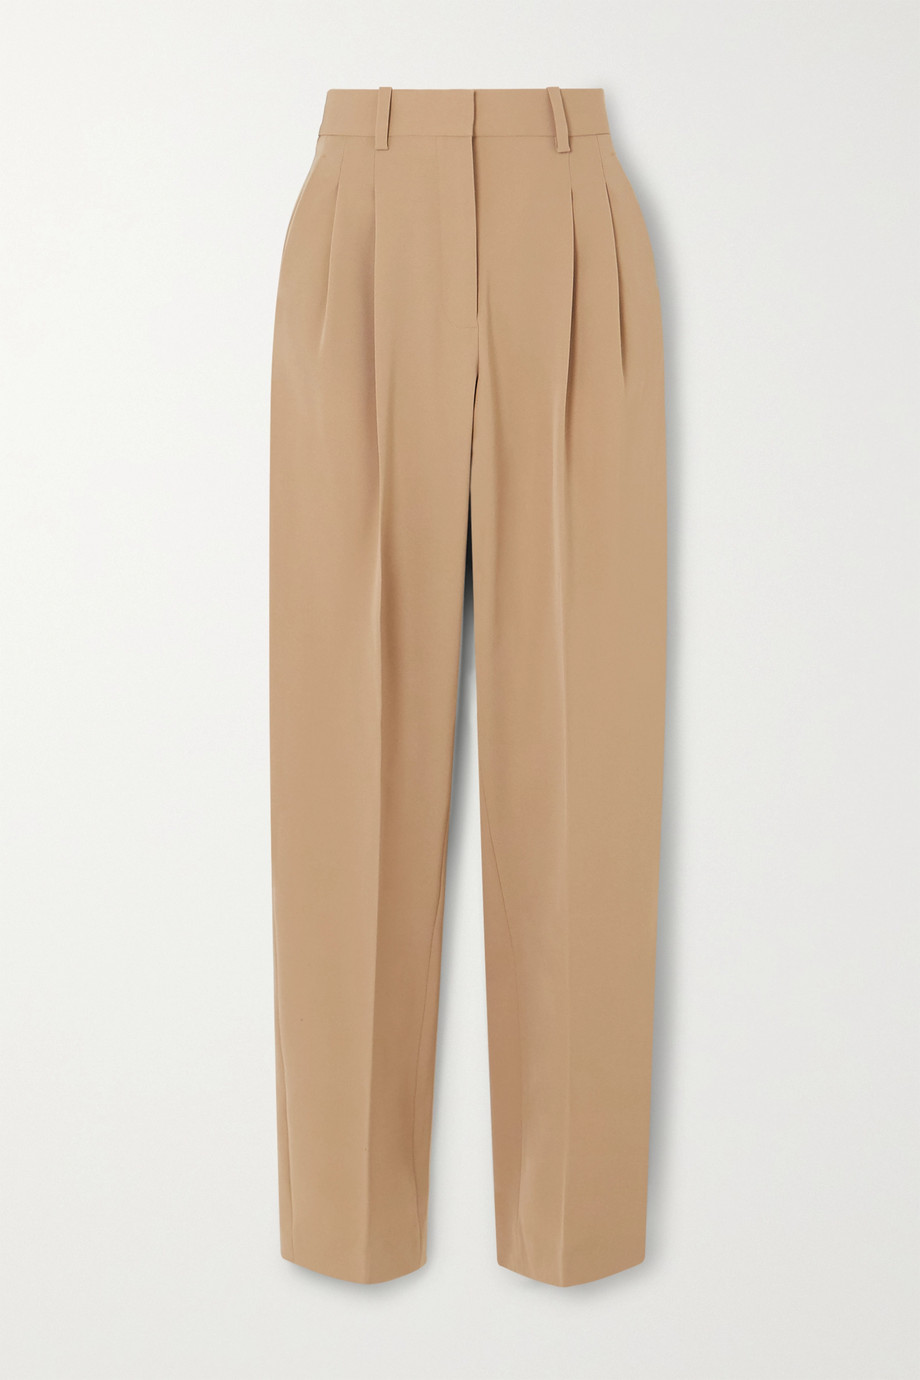 Stella McCartney Wool-blend twill straight-leg pants